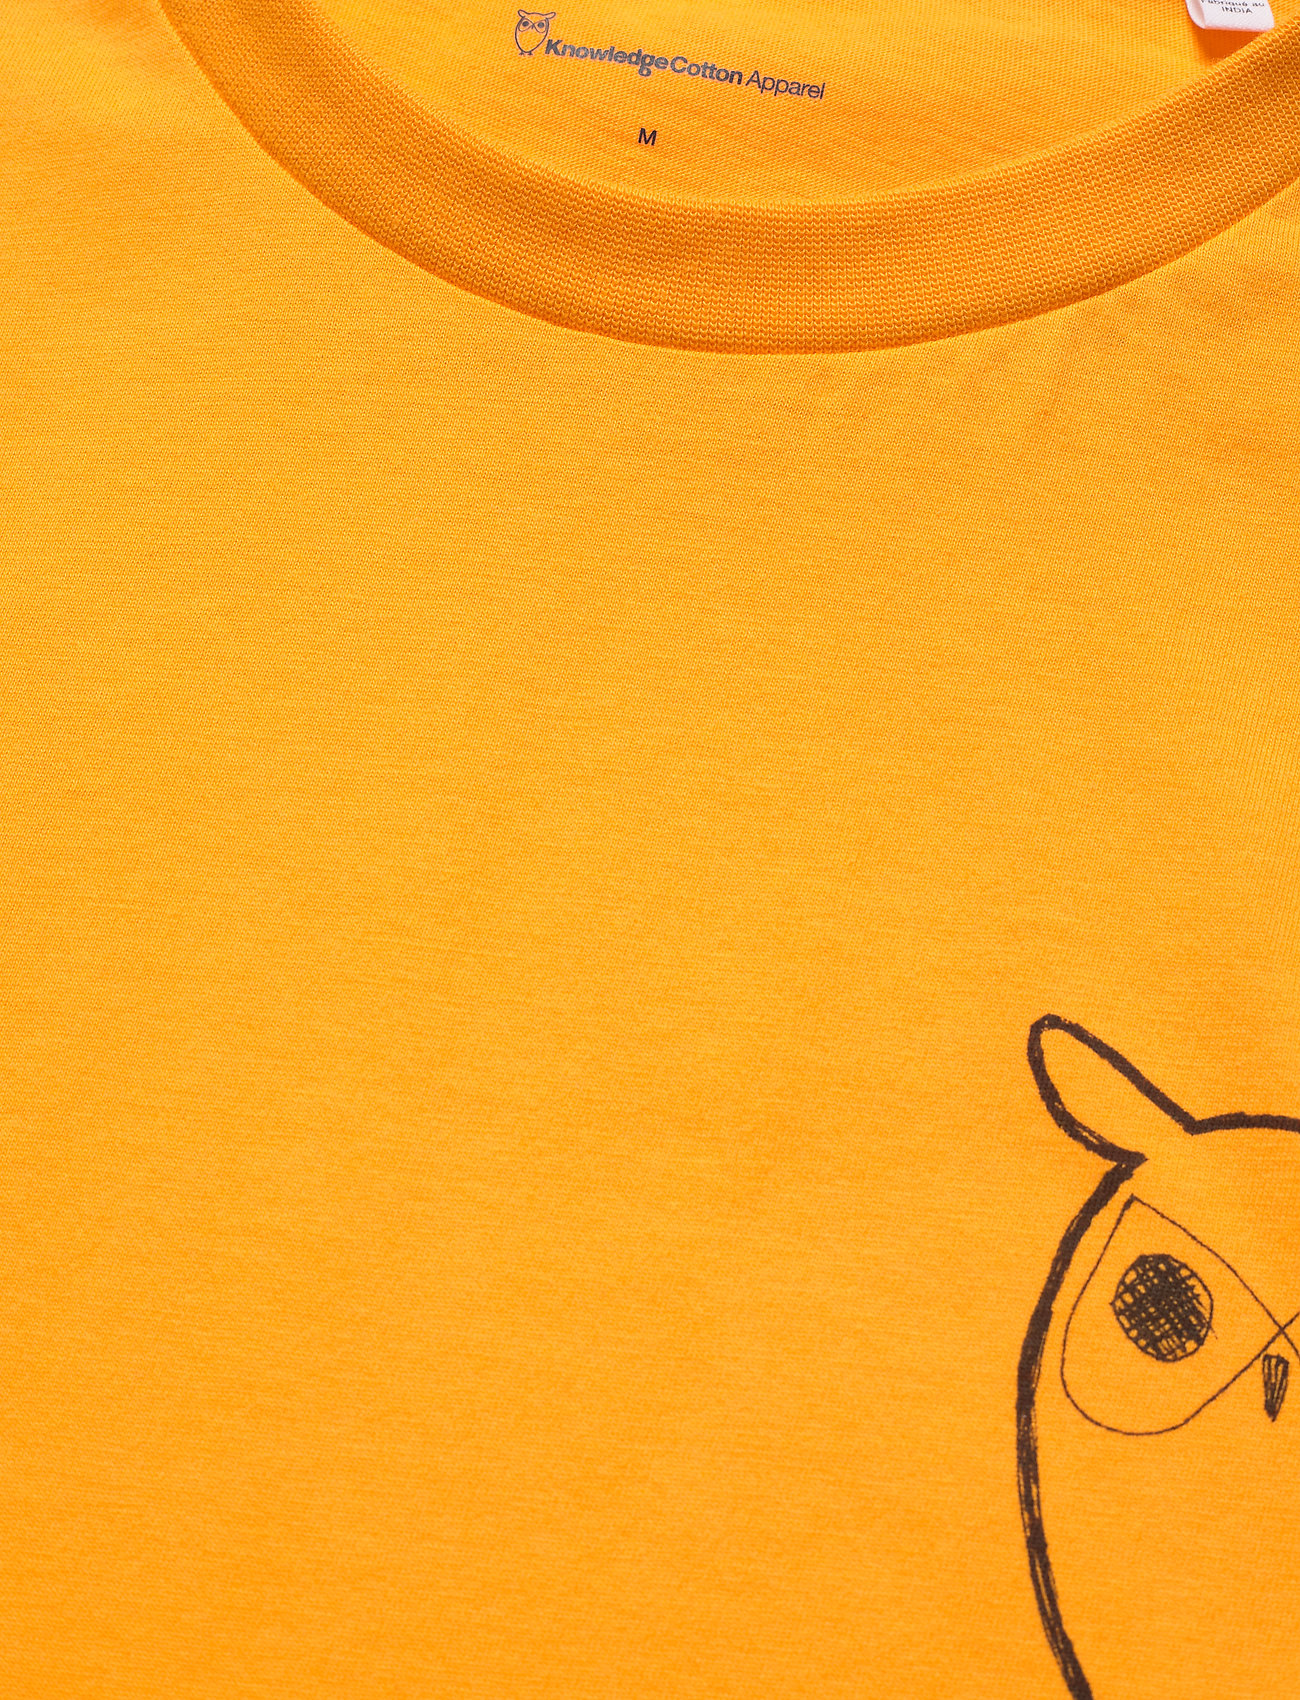 Knowledge Cotton Apparel ALDER owl chest tee - GOTS/Vegan - T-skjorter ZENNIA YELLOW - Menn Klær